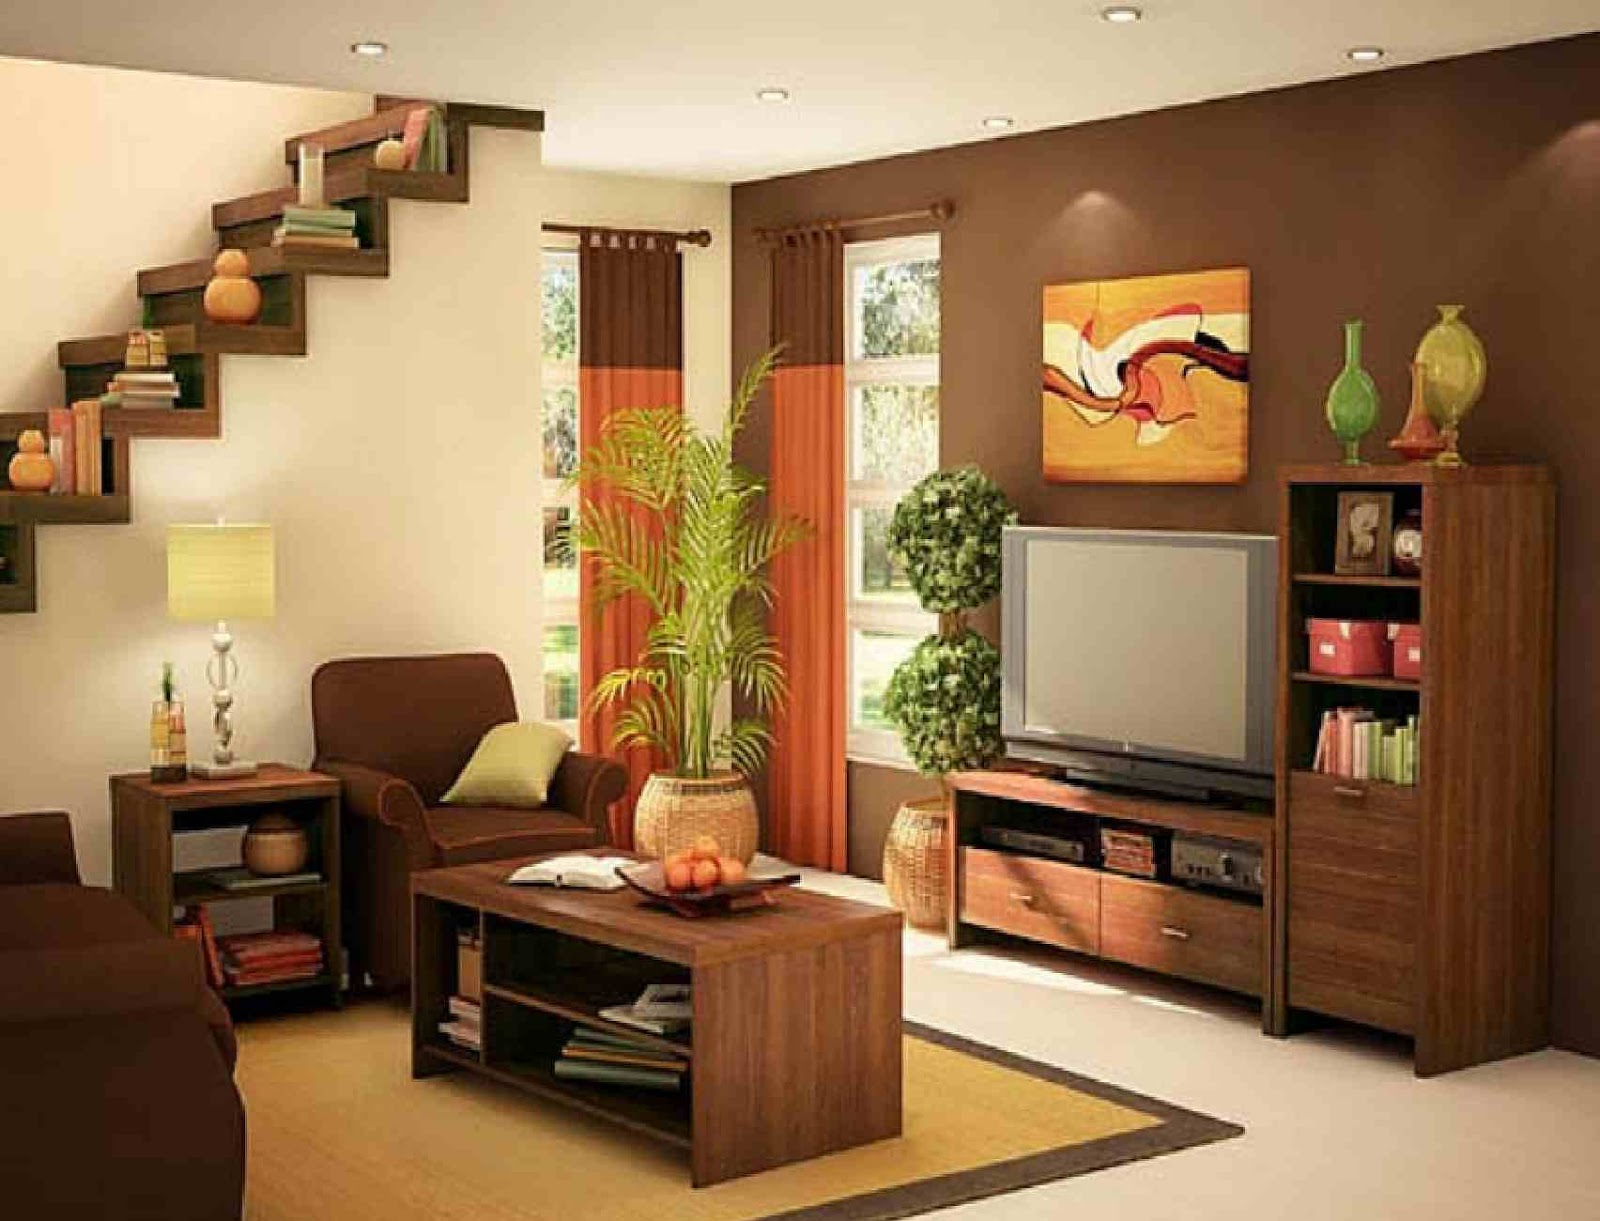 Home interior designs simple living room designs for Simple decorating ideas for living room